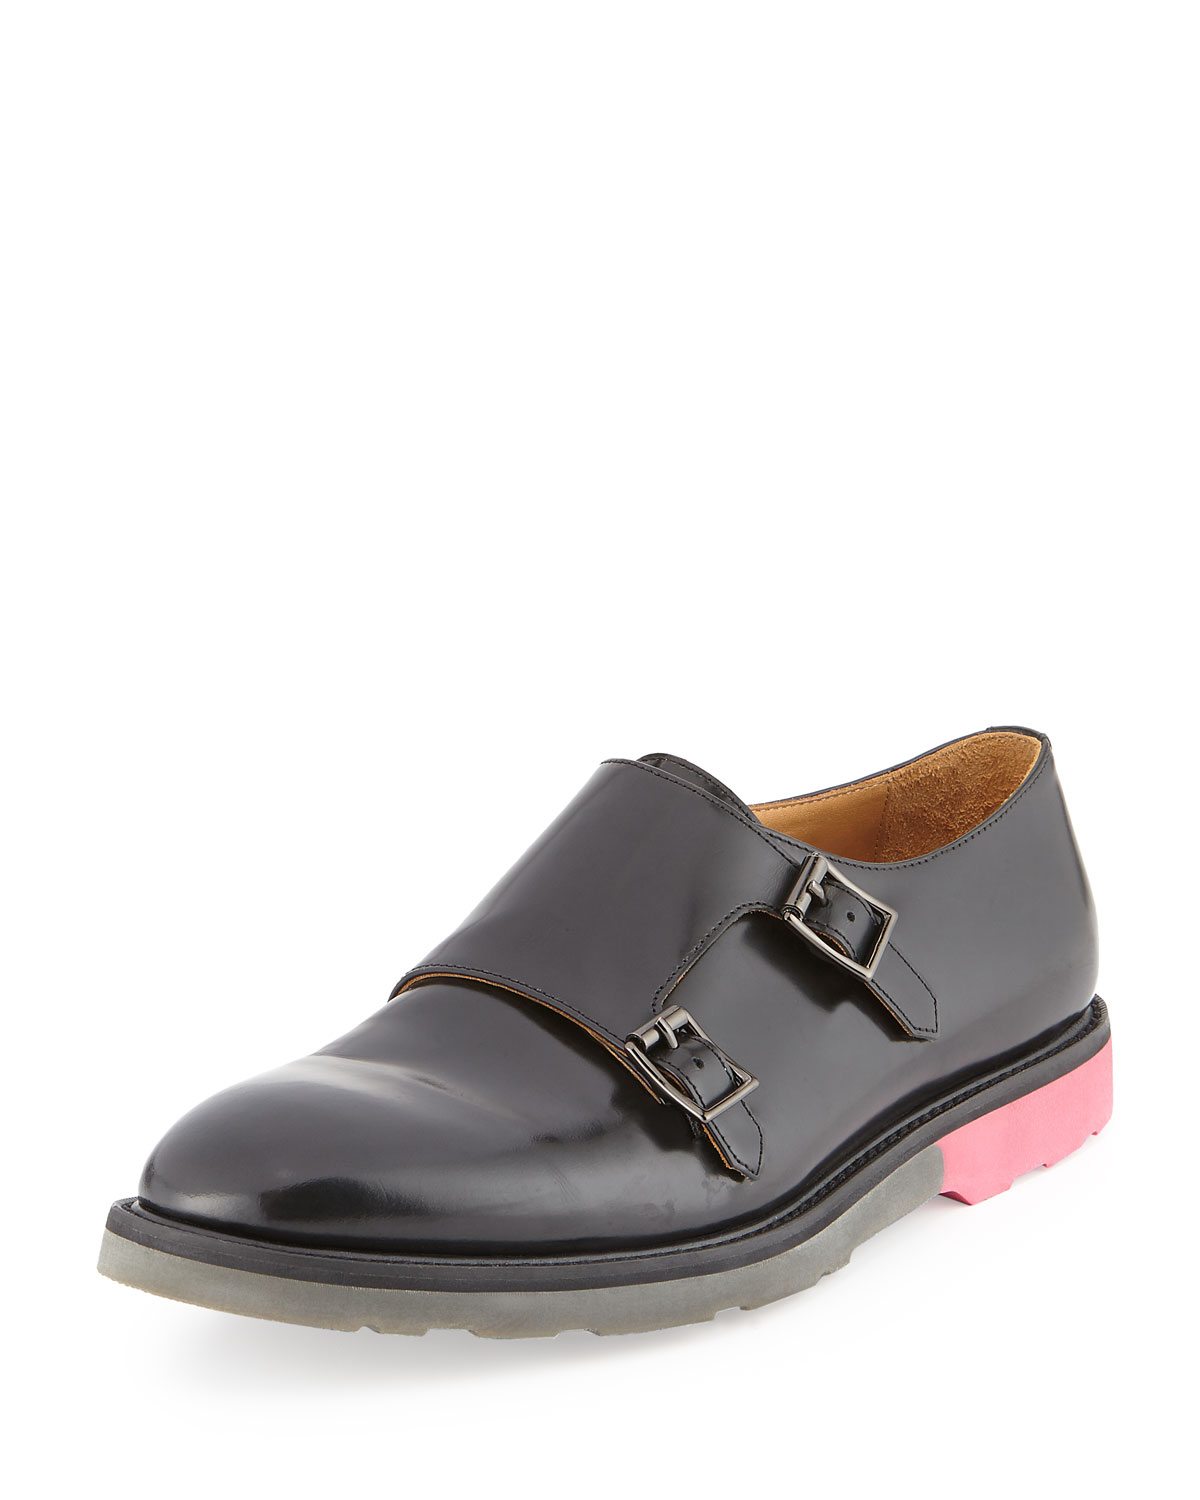 d08fd690755 Lyst - Paul Smith Pitt Monk Strap Leather Loafer in Black for Men